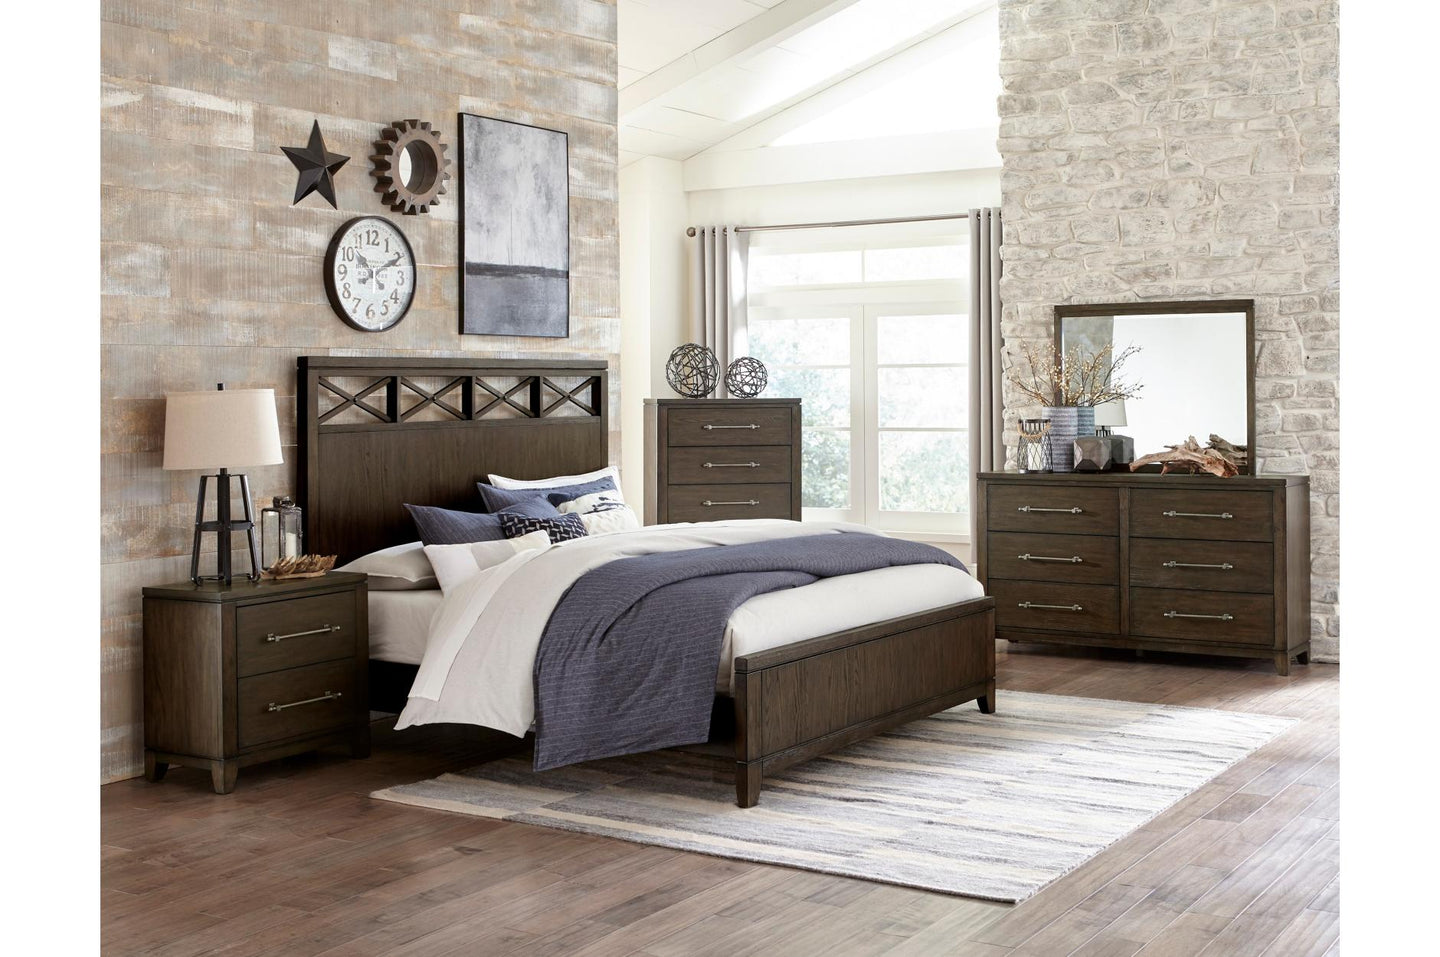 Homelegance Griggs Gray Wood Finish 4 Piece California King Bedroom Set